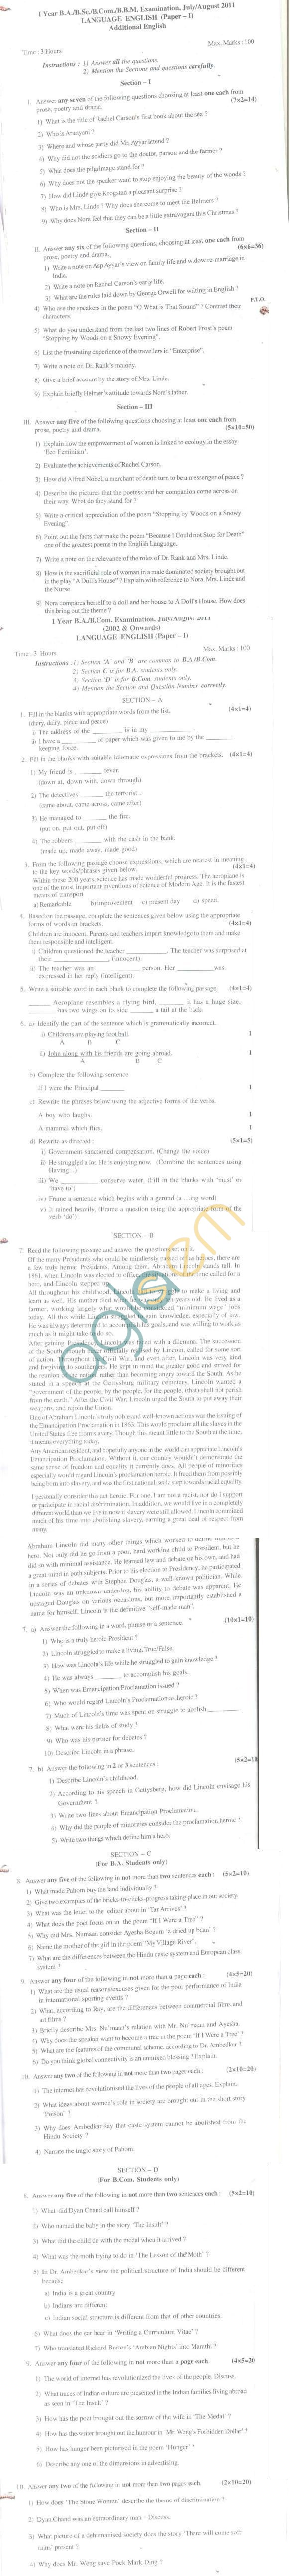 Bangalore University Question Paper July/August 2011 I Year B.A./B.Com./B.Sc./B.Com./BBM Examination - English